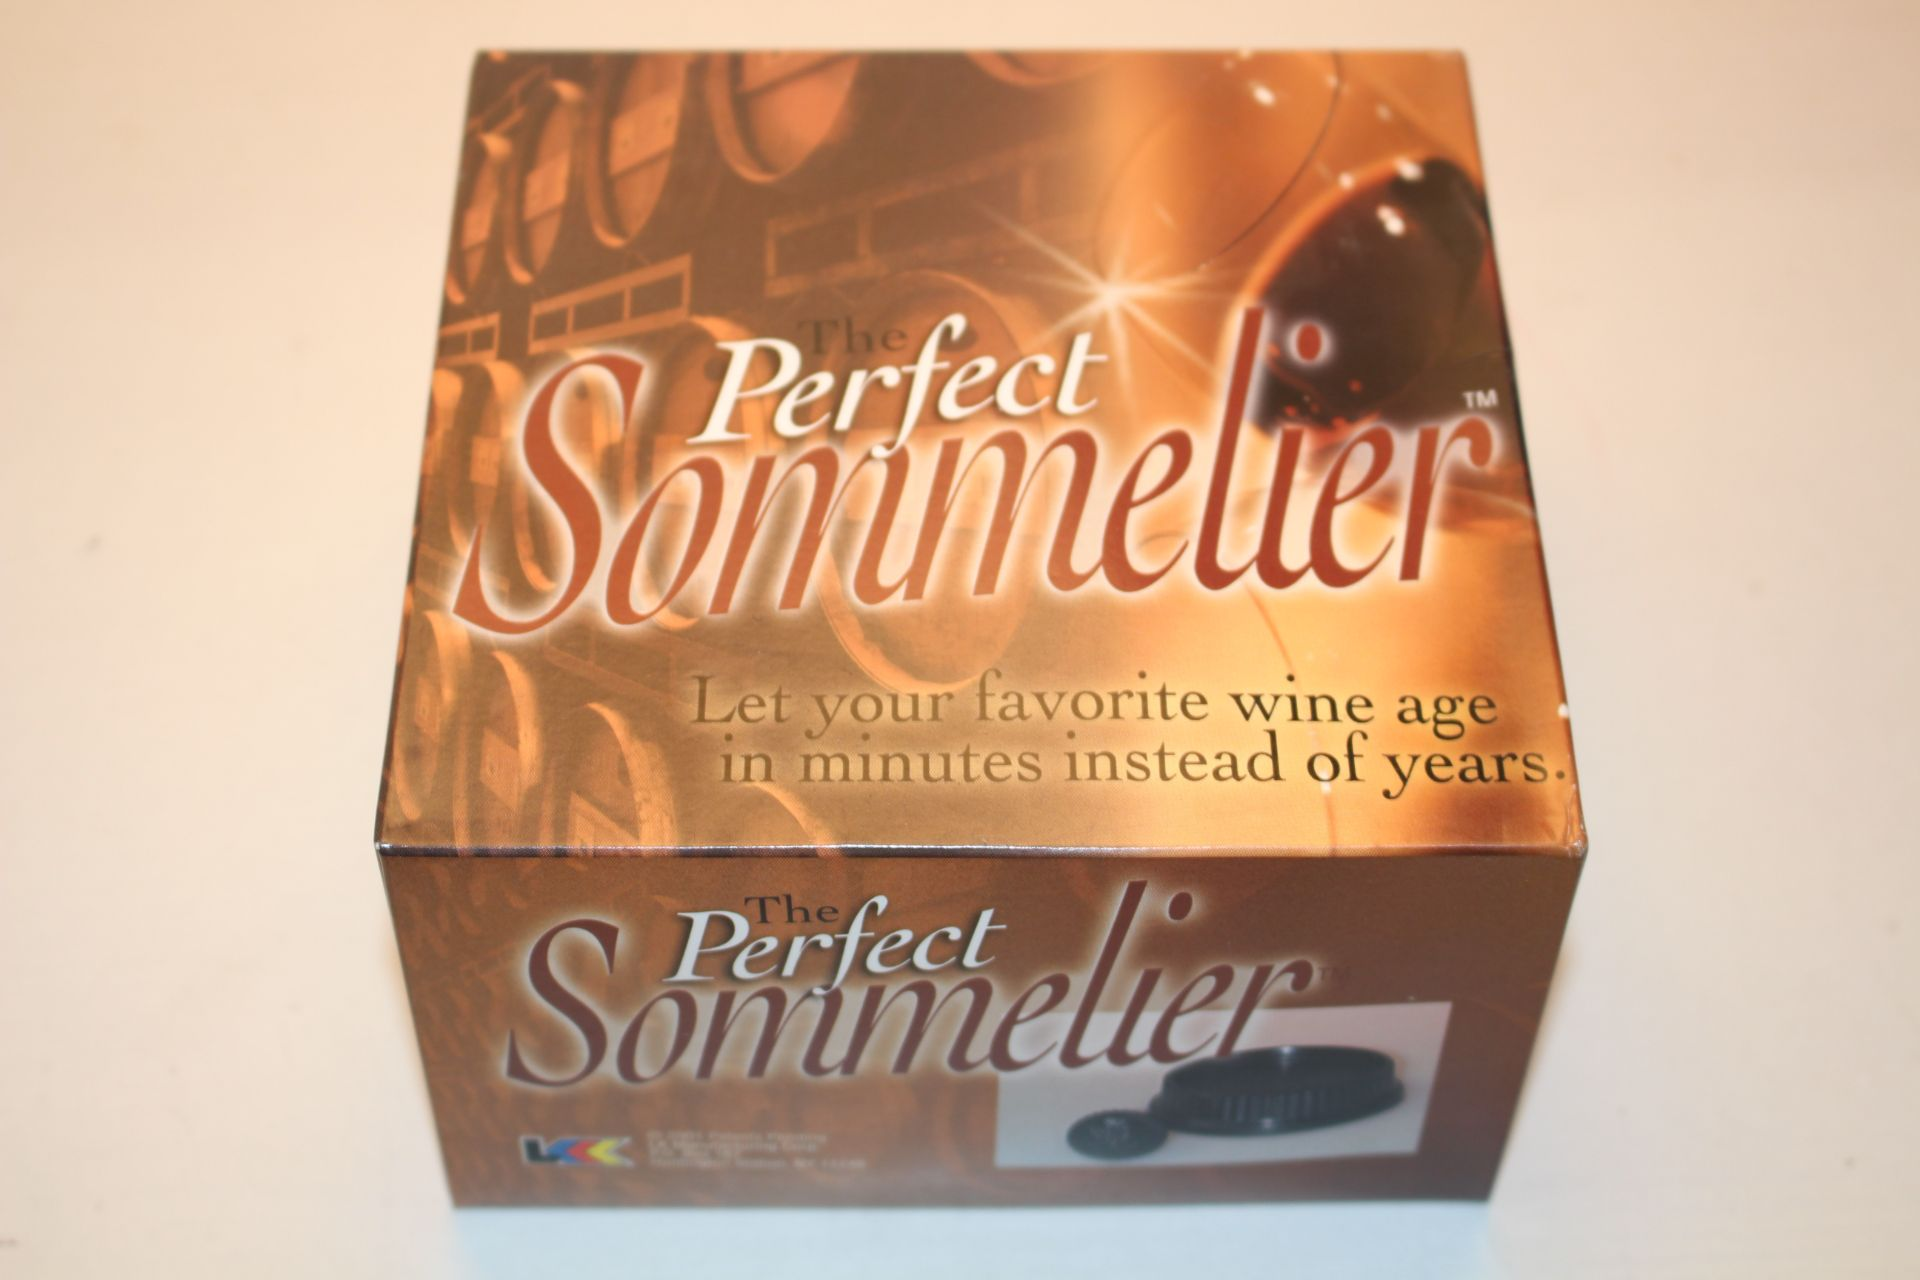 4X BOXED THE PERFECT SOMMELIER WINE AGING KITS Condition ReportAppraisal Available on Request- All